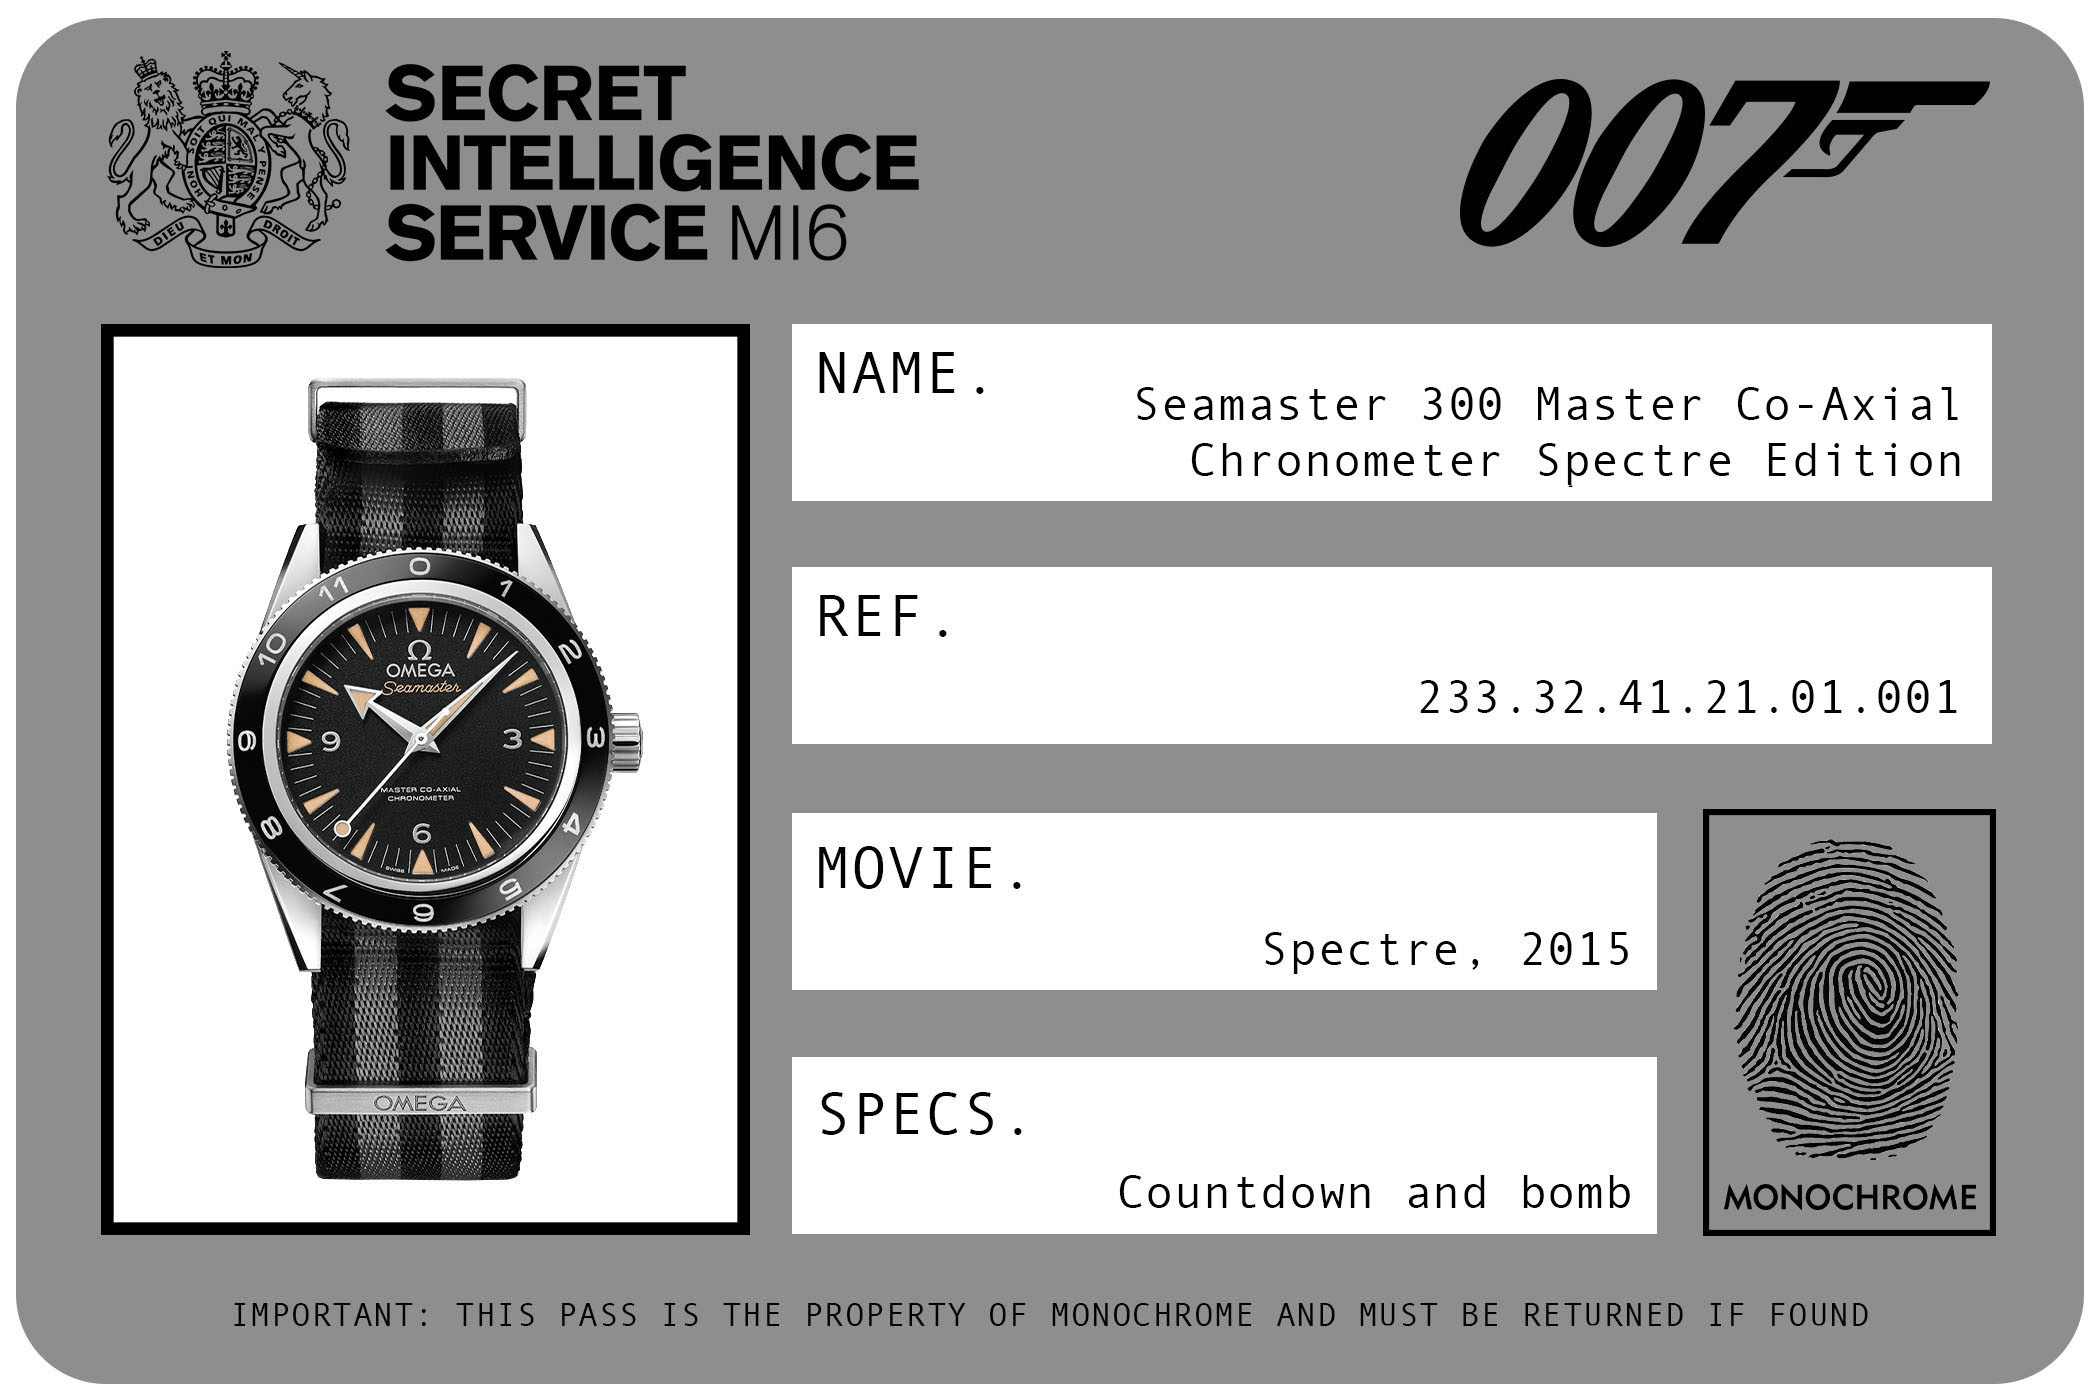 Omega Seamaster 300 Master Co-Axial Chronometer Spectre Edition 233.32.41.21.01.001 James Bond Spectre ID Card 2015